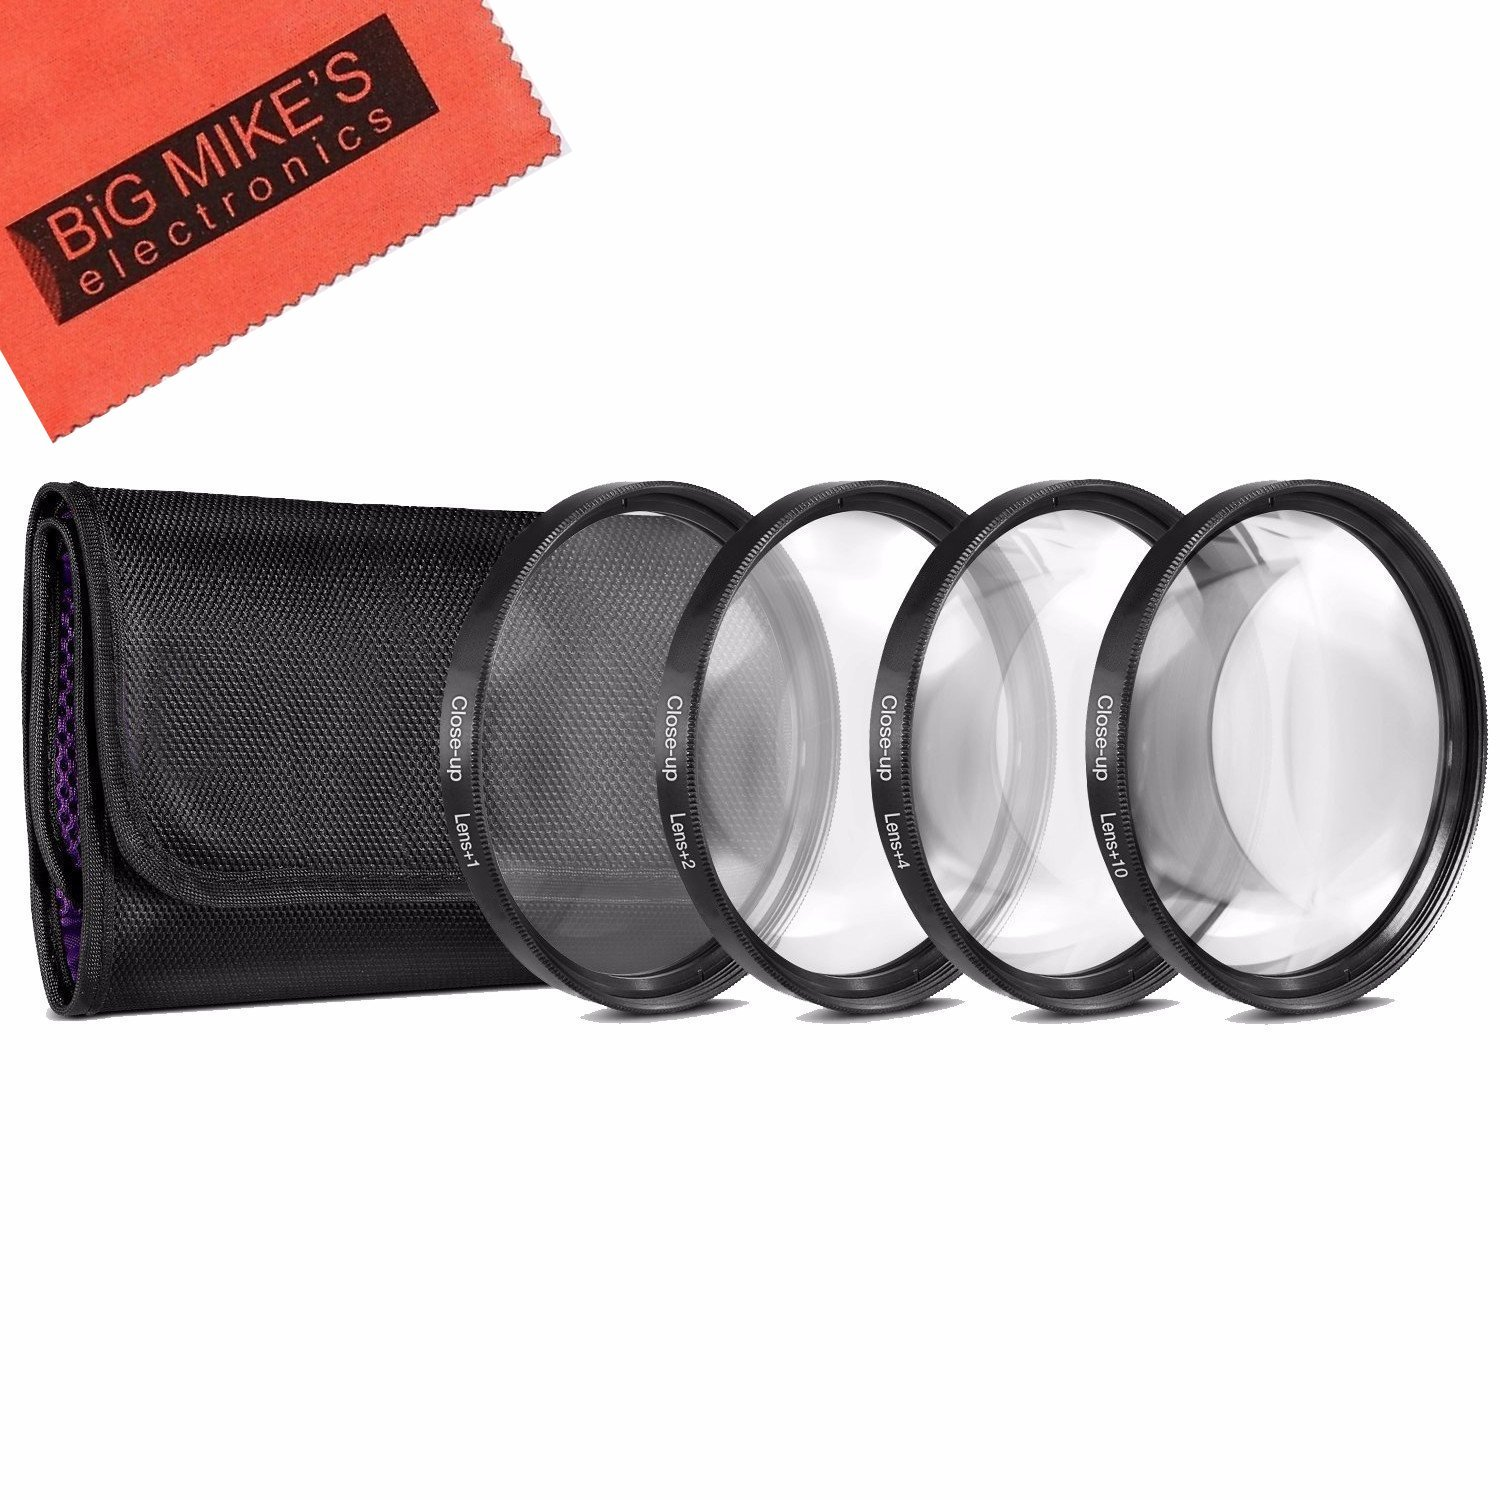 82mm Close-Up Filter Set (+1, +2, +4 and +10 Diopters) Magnificatoin Kit - Metal Rim for Canon Digital EOS Rebel SL1, T1i, T2i, T3, T3i, T4i, T5, T5i EOS 60D, EOS 70D, 50D, 40D, 30D, EOS 5D, EOS 5D Mark III, EOS 6D, EOS 7D, EOS 7D Mark II, EOS-M Digital S